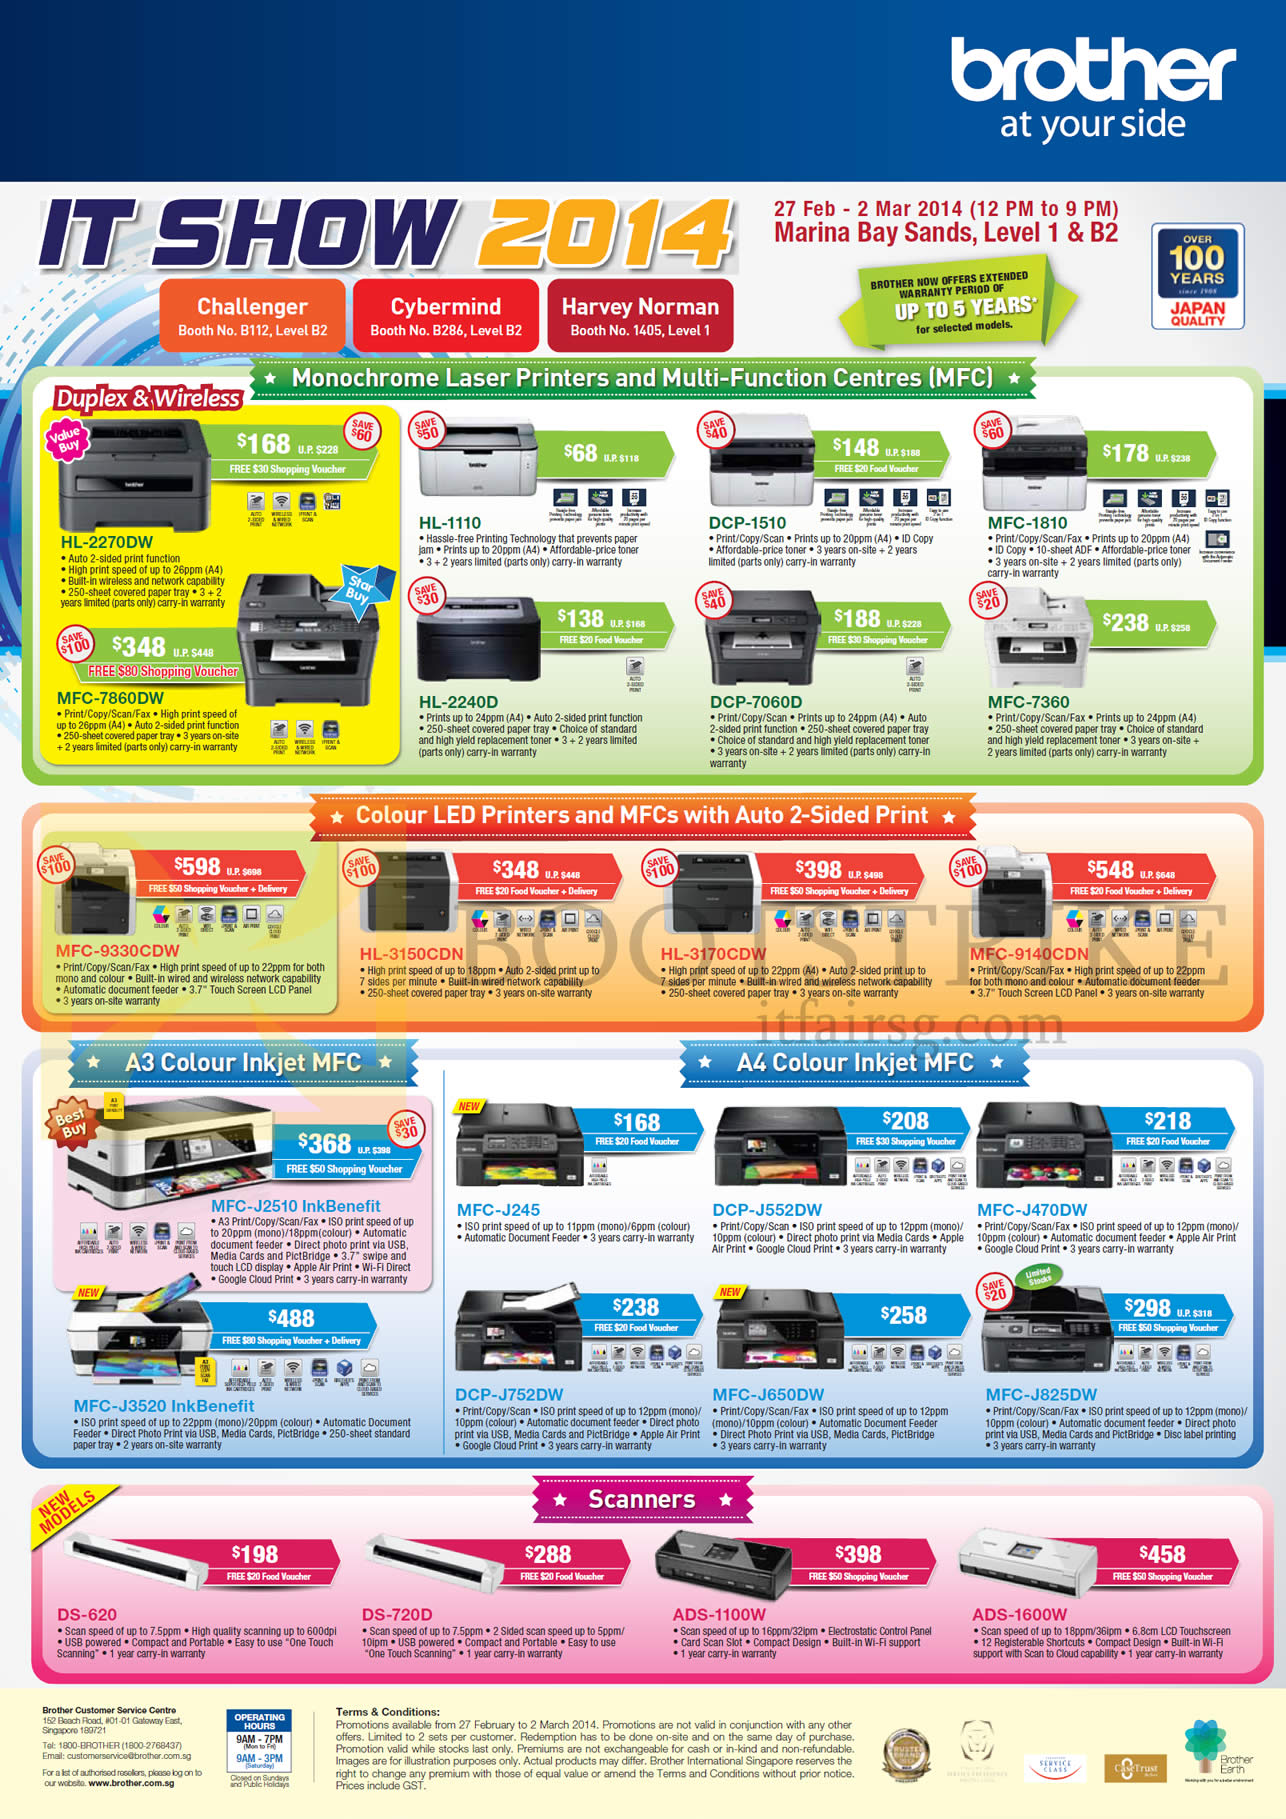 IT SHOW 2014 price list image brochure of Brother Laser LED Printers, Scanners HL-2270DW 1110, DCP-1510 7060D J552DW J752DW, MFC-1810 7860Dw 7360 J470DW J552DW J825DW J650Dw, DS-620 720D, ADS-1100W, 1600W